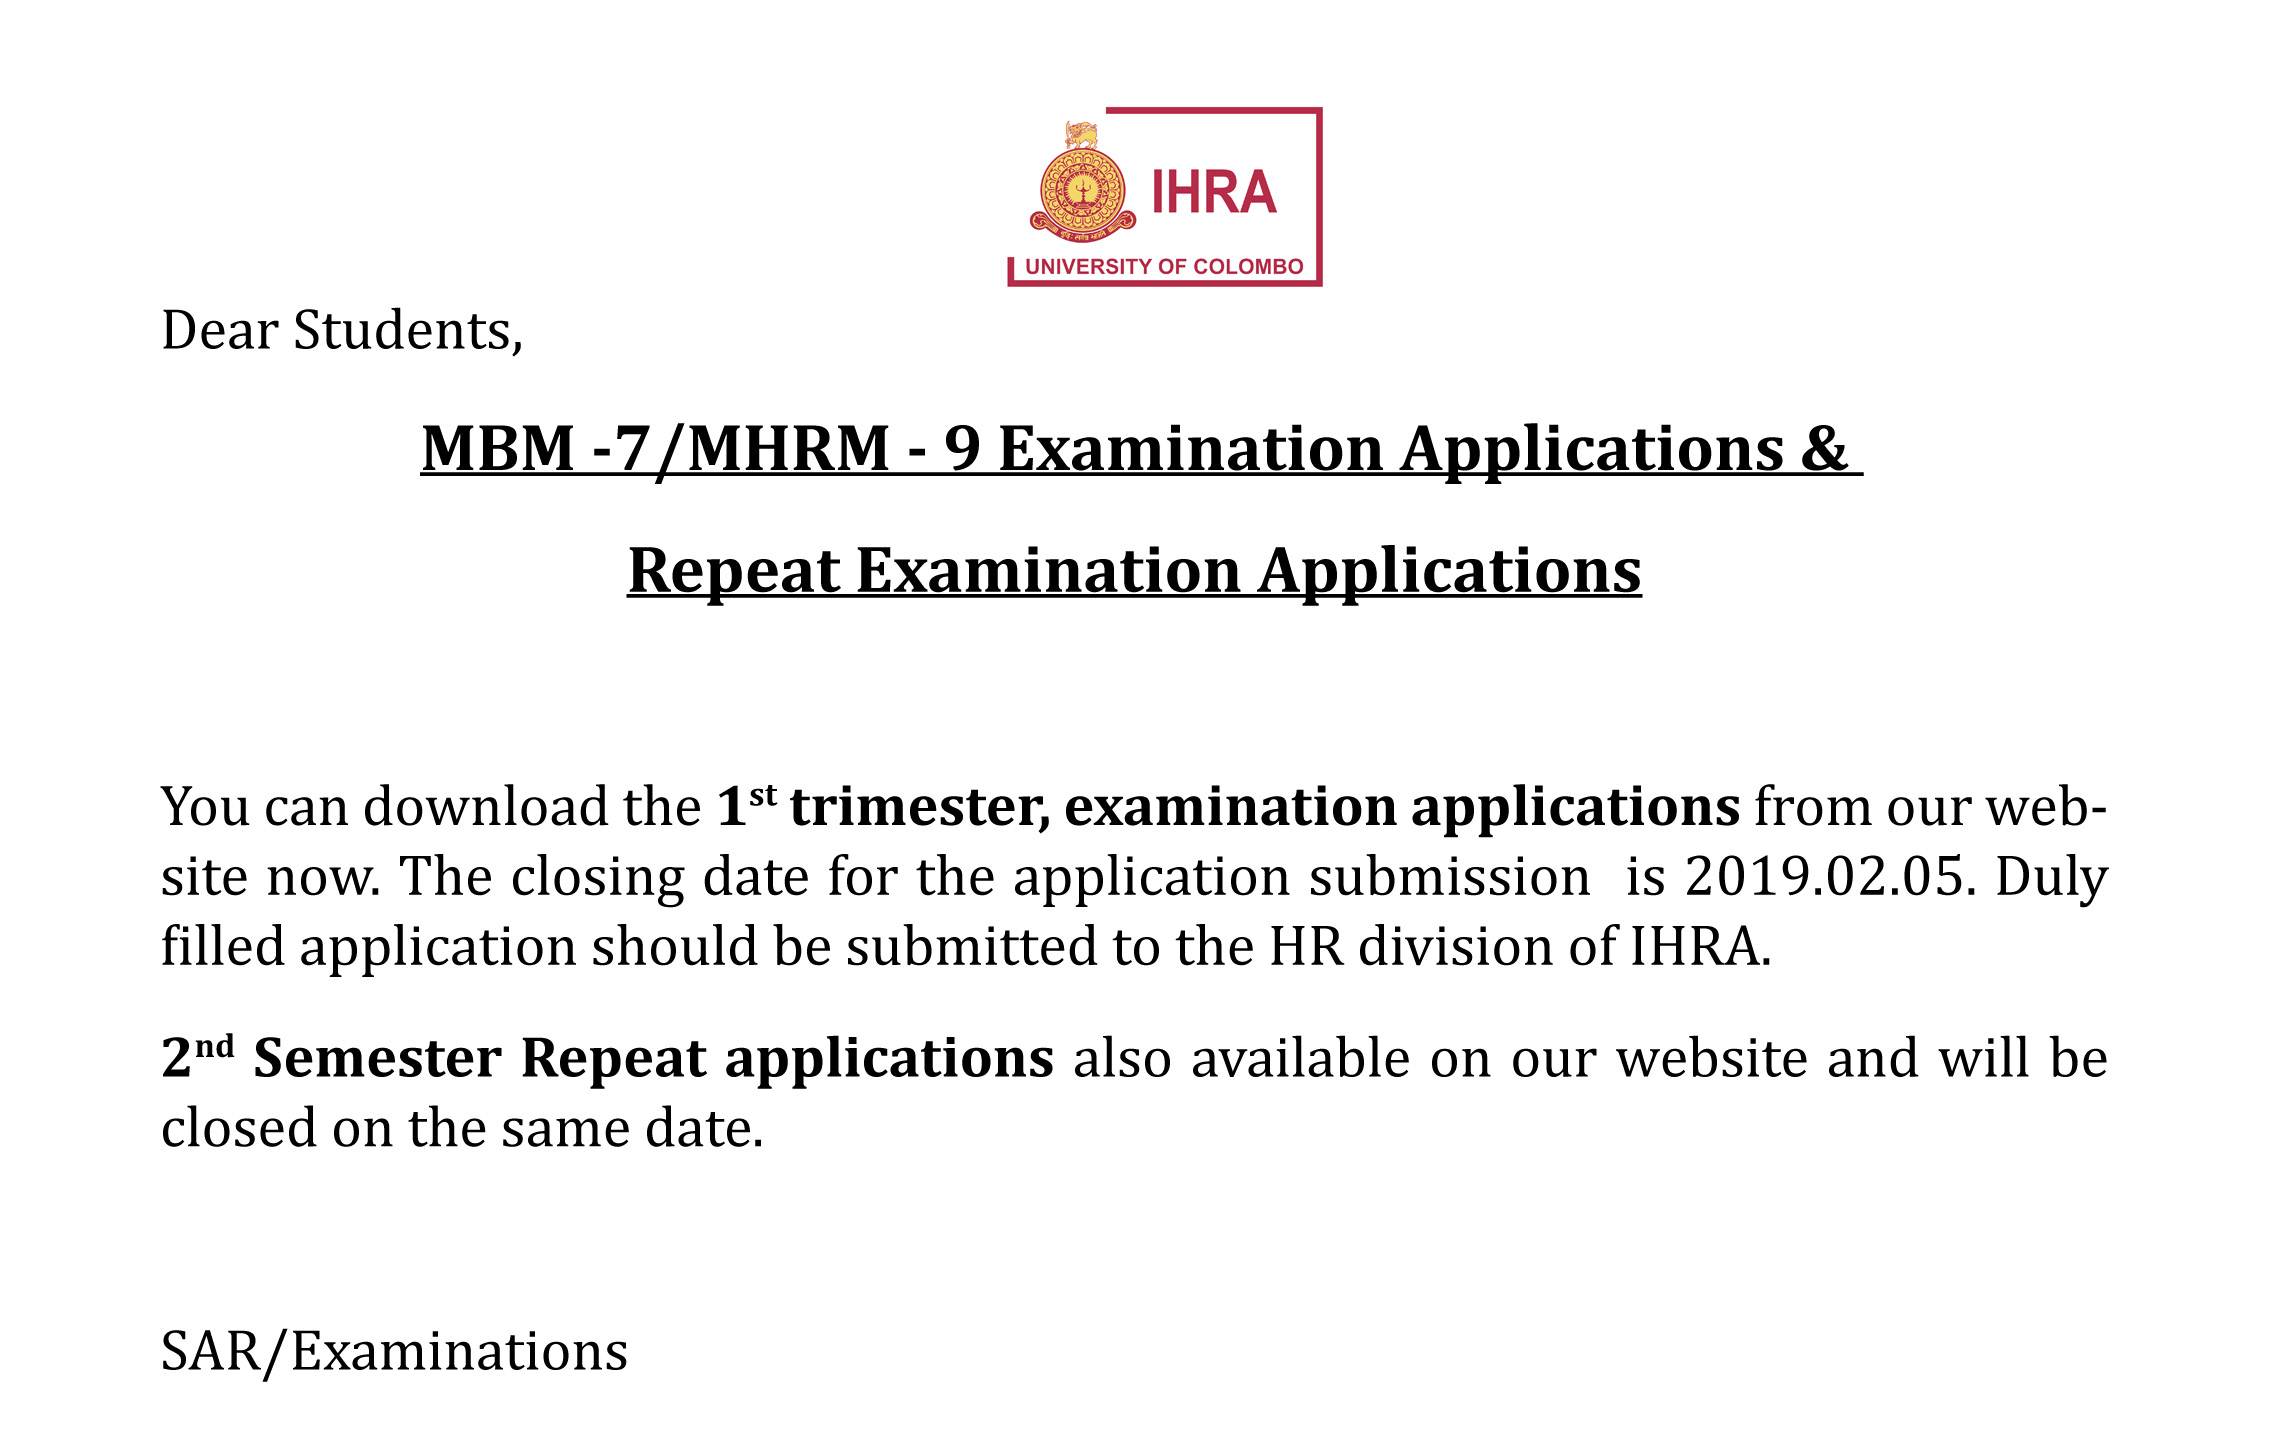 MBM -7/MHRM – 9 Examination Applications &  Repeat Examination Applications